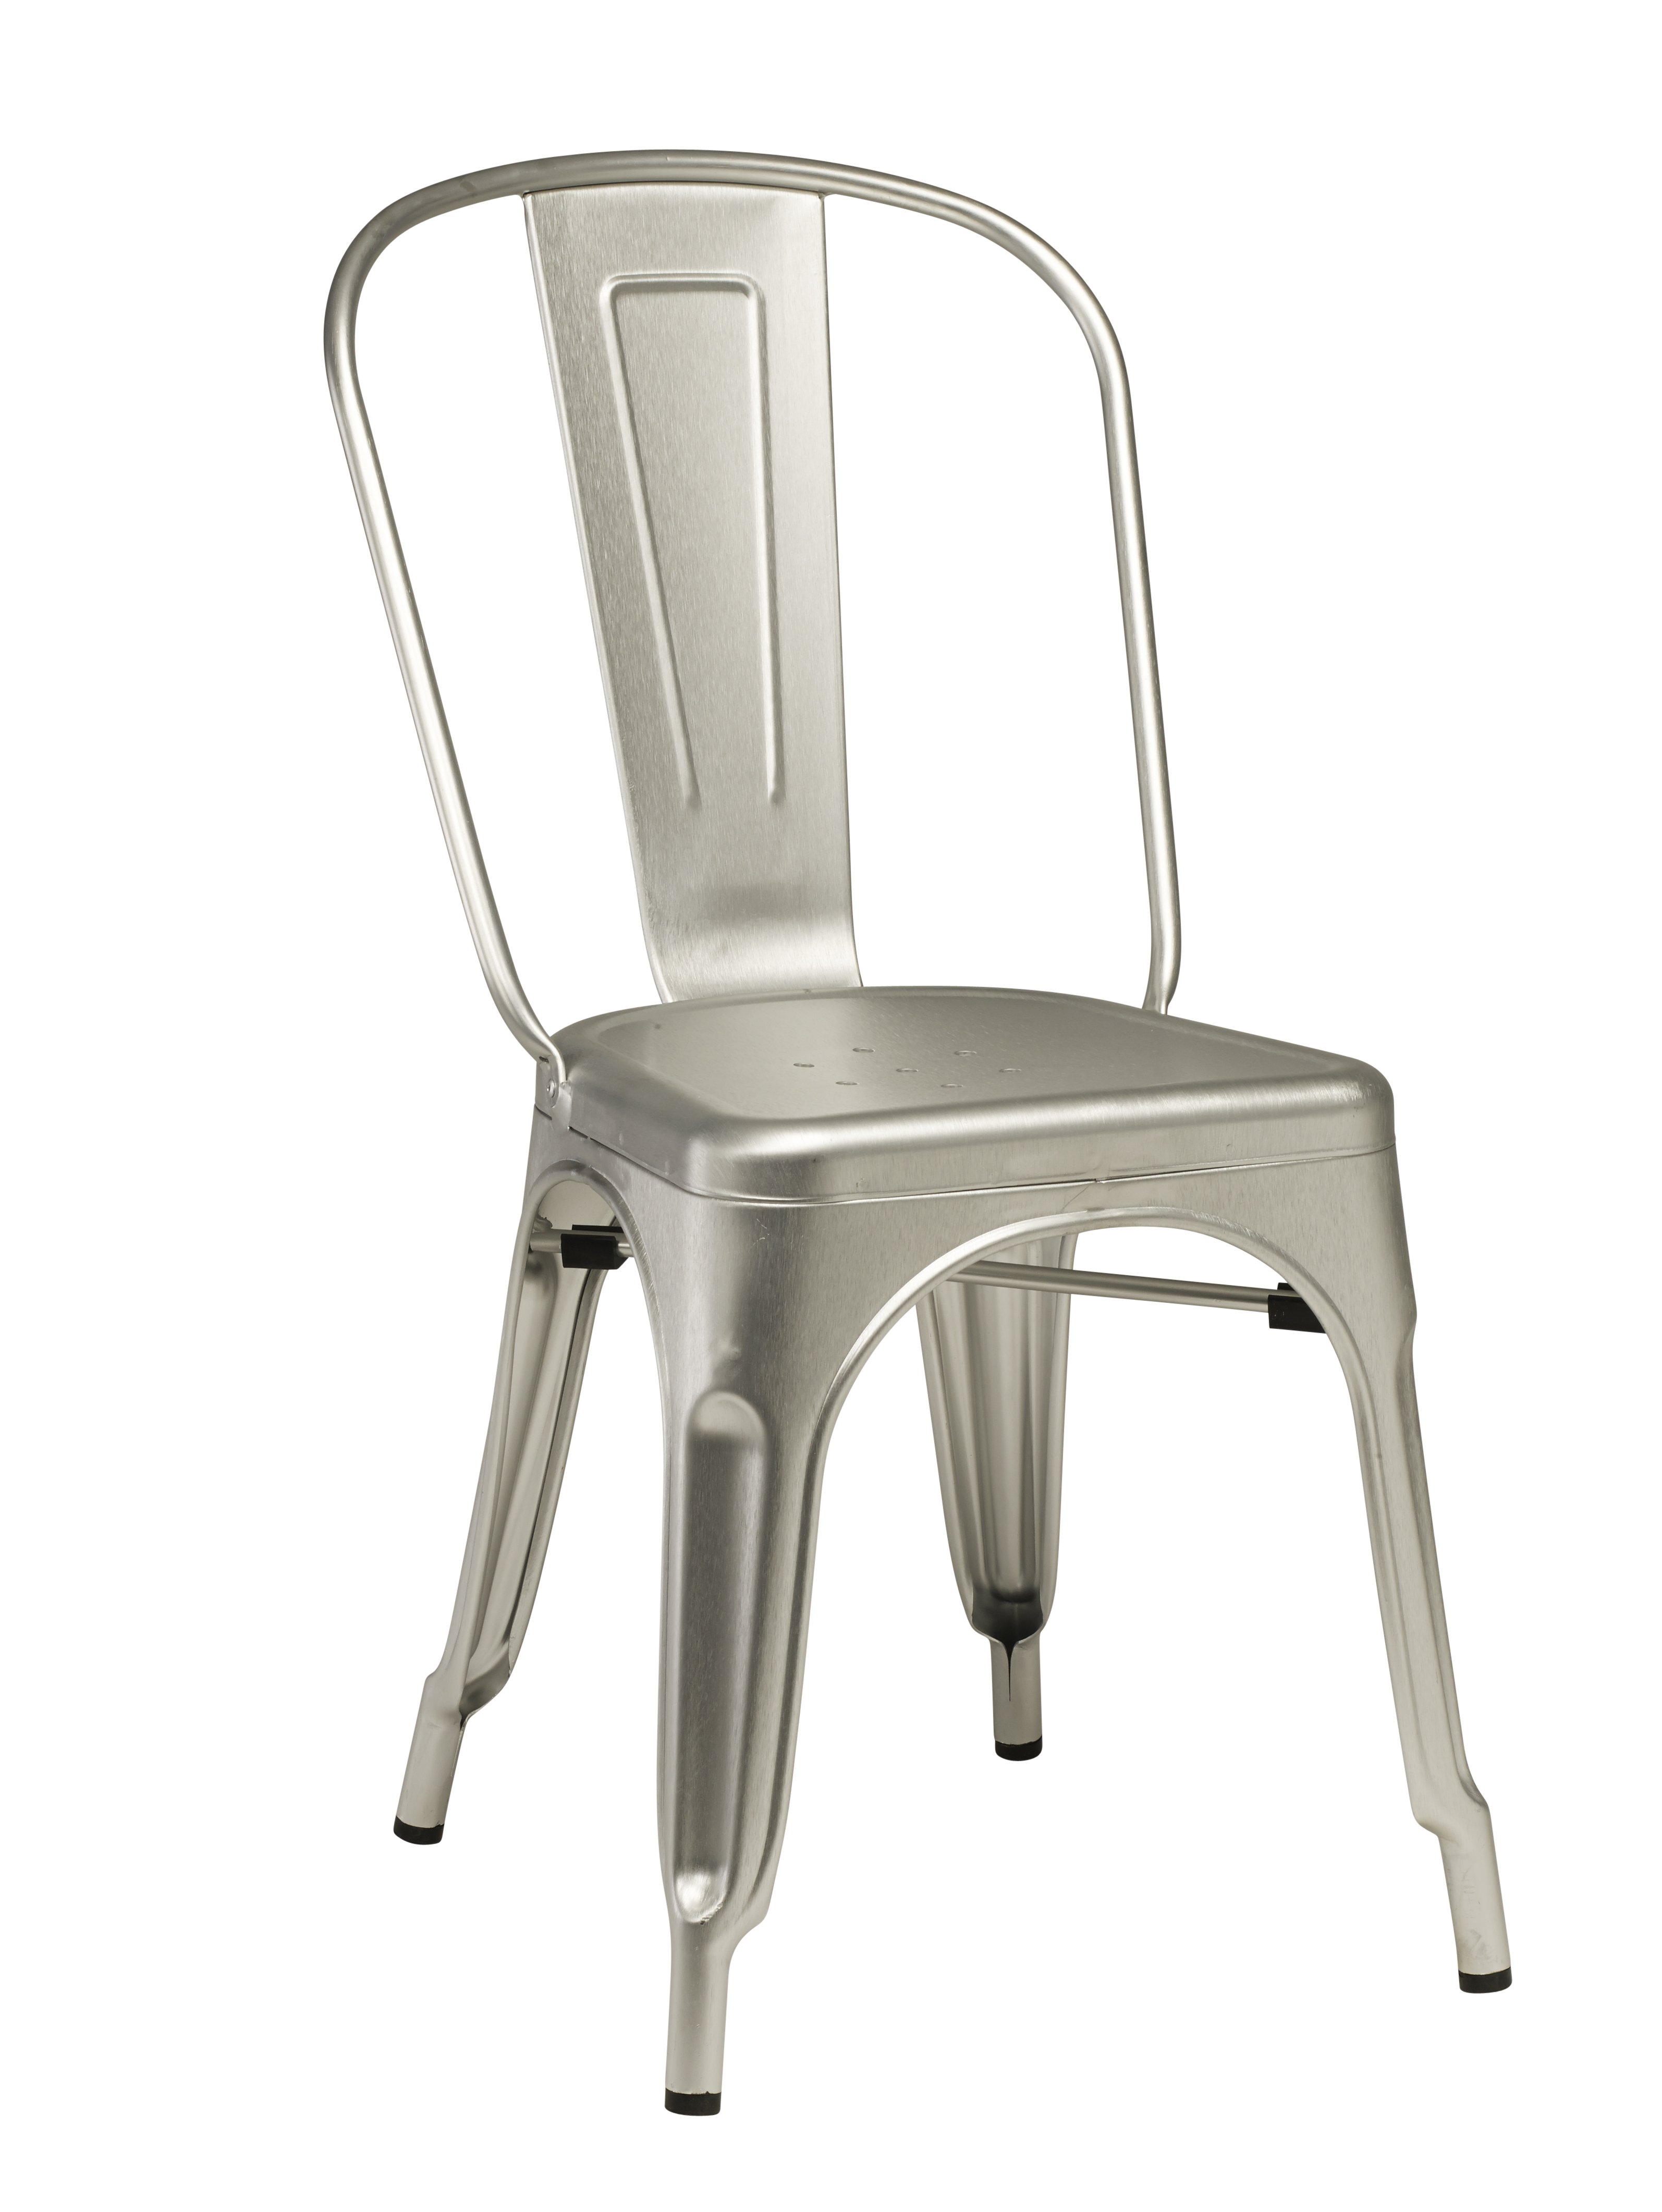 830 ALIX Series Outdoor Restaurant Chairs Ships from Mountainside